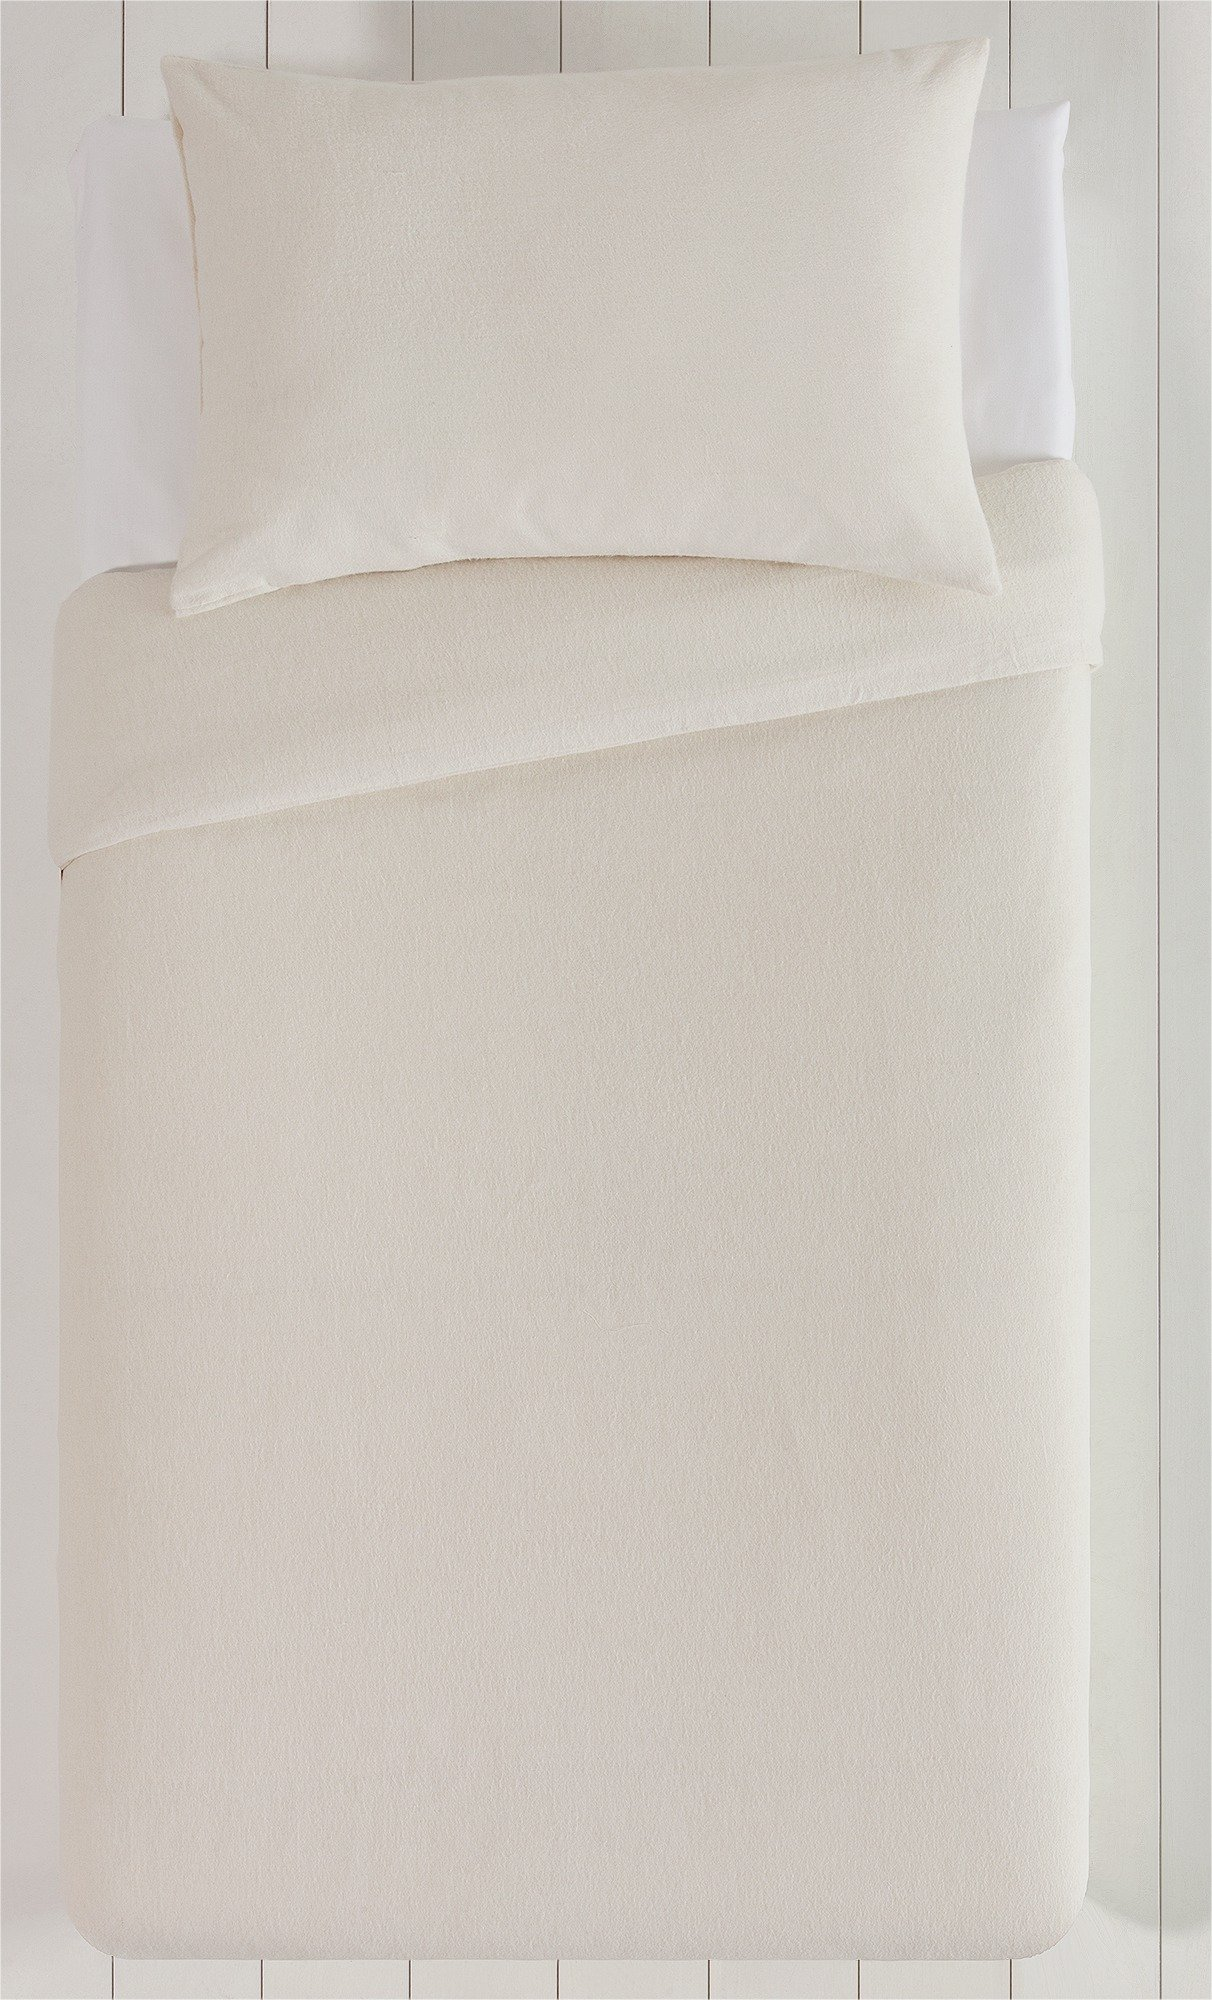 Collection - Cream Brushed - Cotton - Bedding Set - Toddler